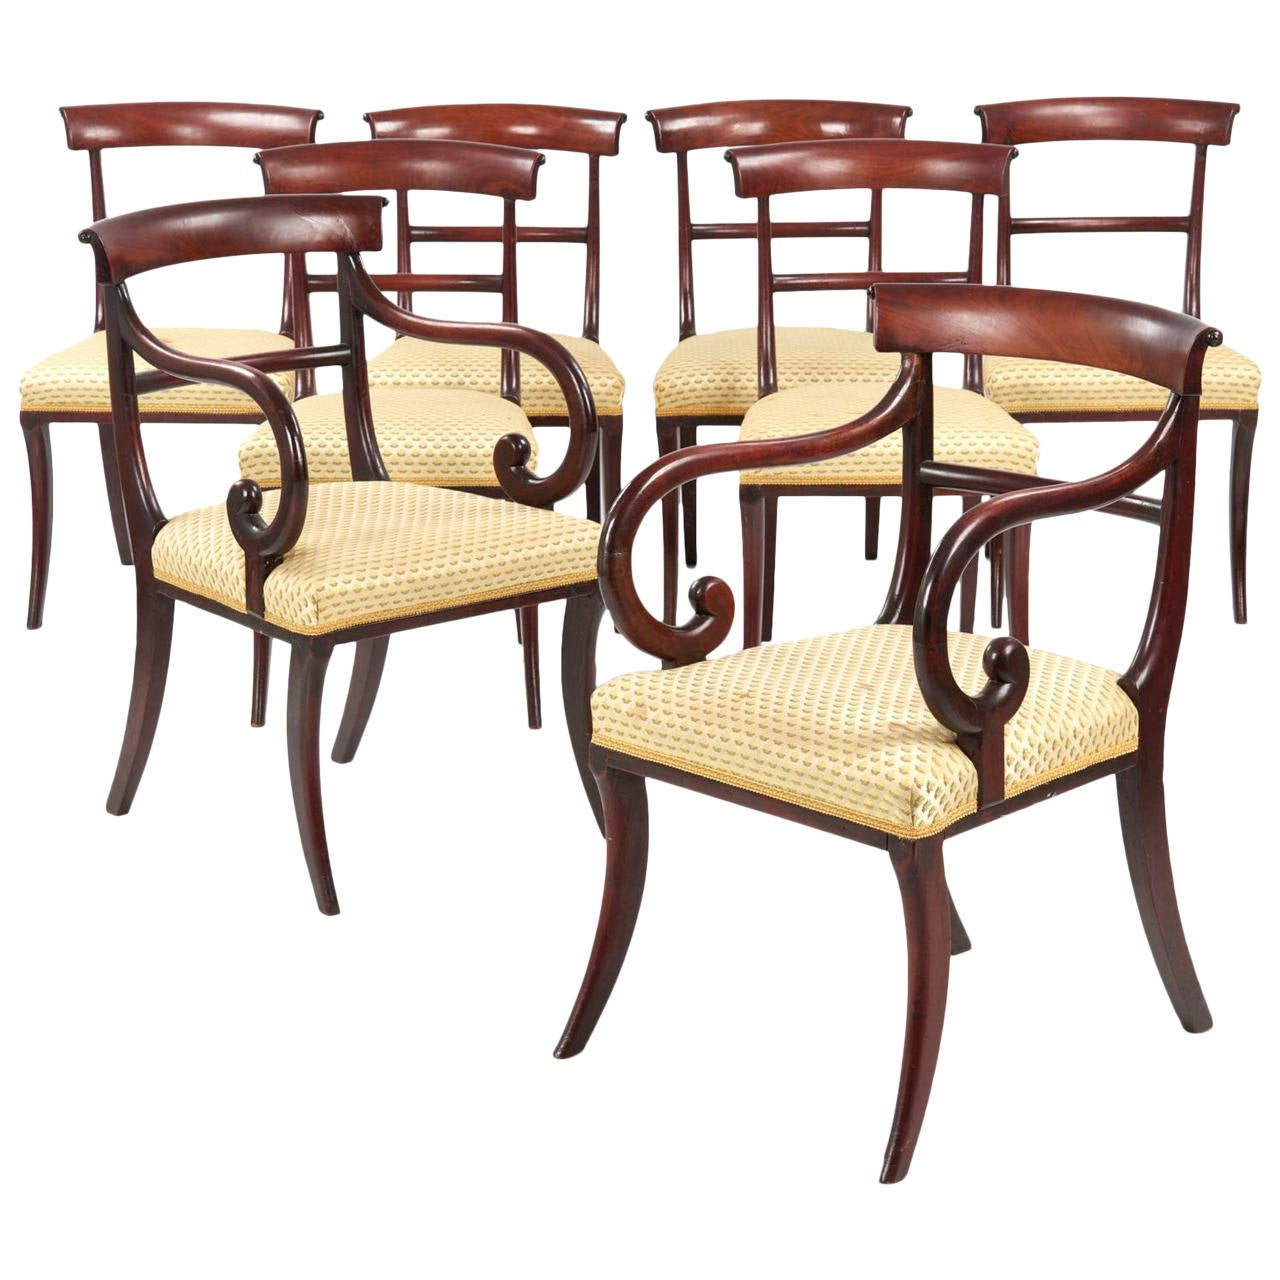 Eight 19th Century English Regency Antique Dining Chairs, circa ...